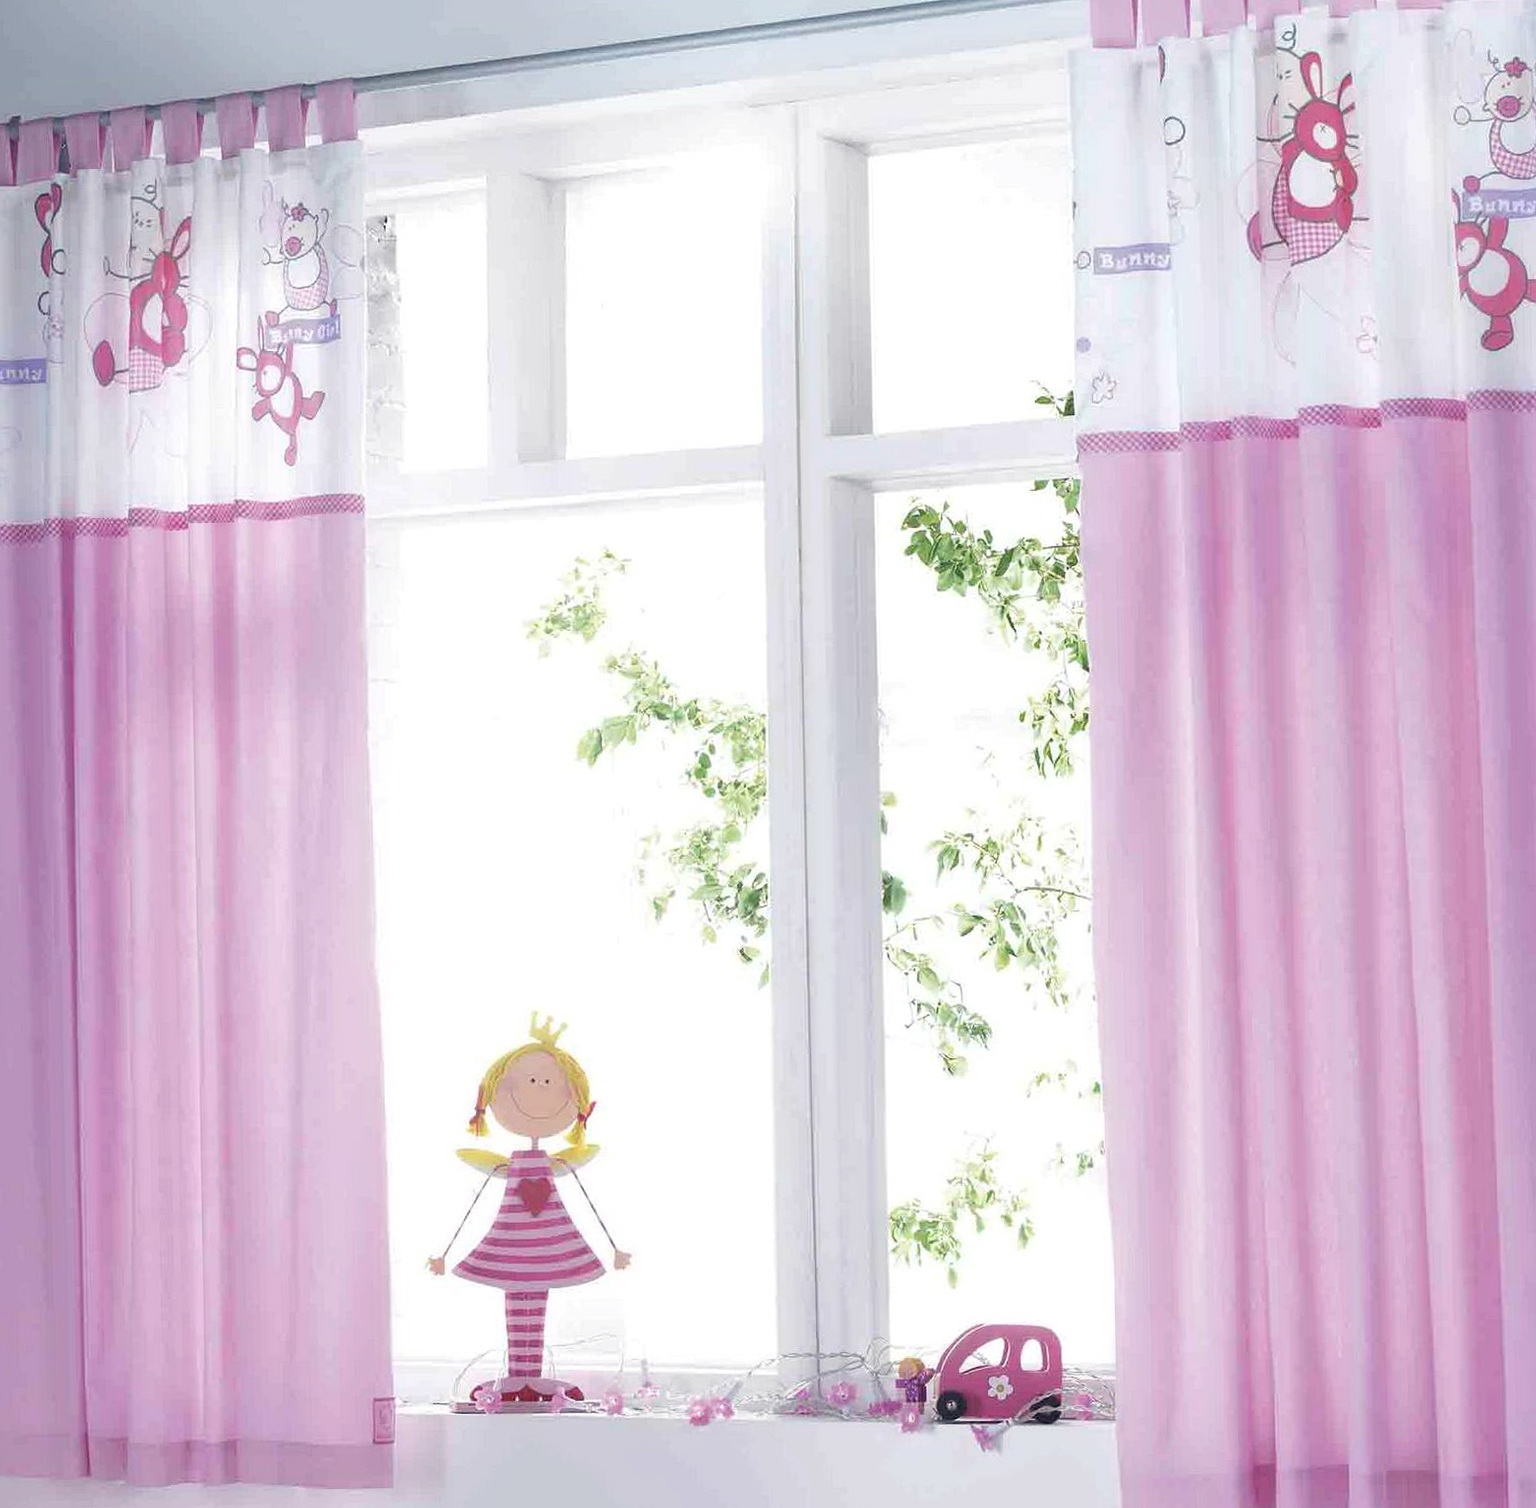 Blackout Curtains For Girls Bedroom Ba Bedroom Curtains Dact With Regard To Bedroom Curtains For Girls (View 12 of 25)